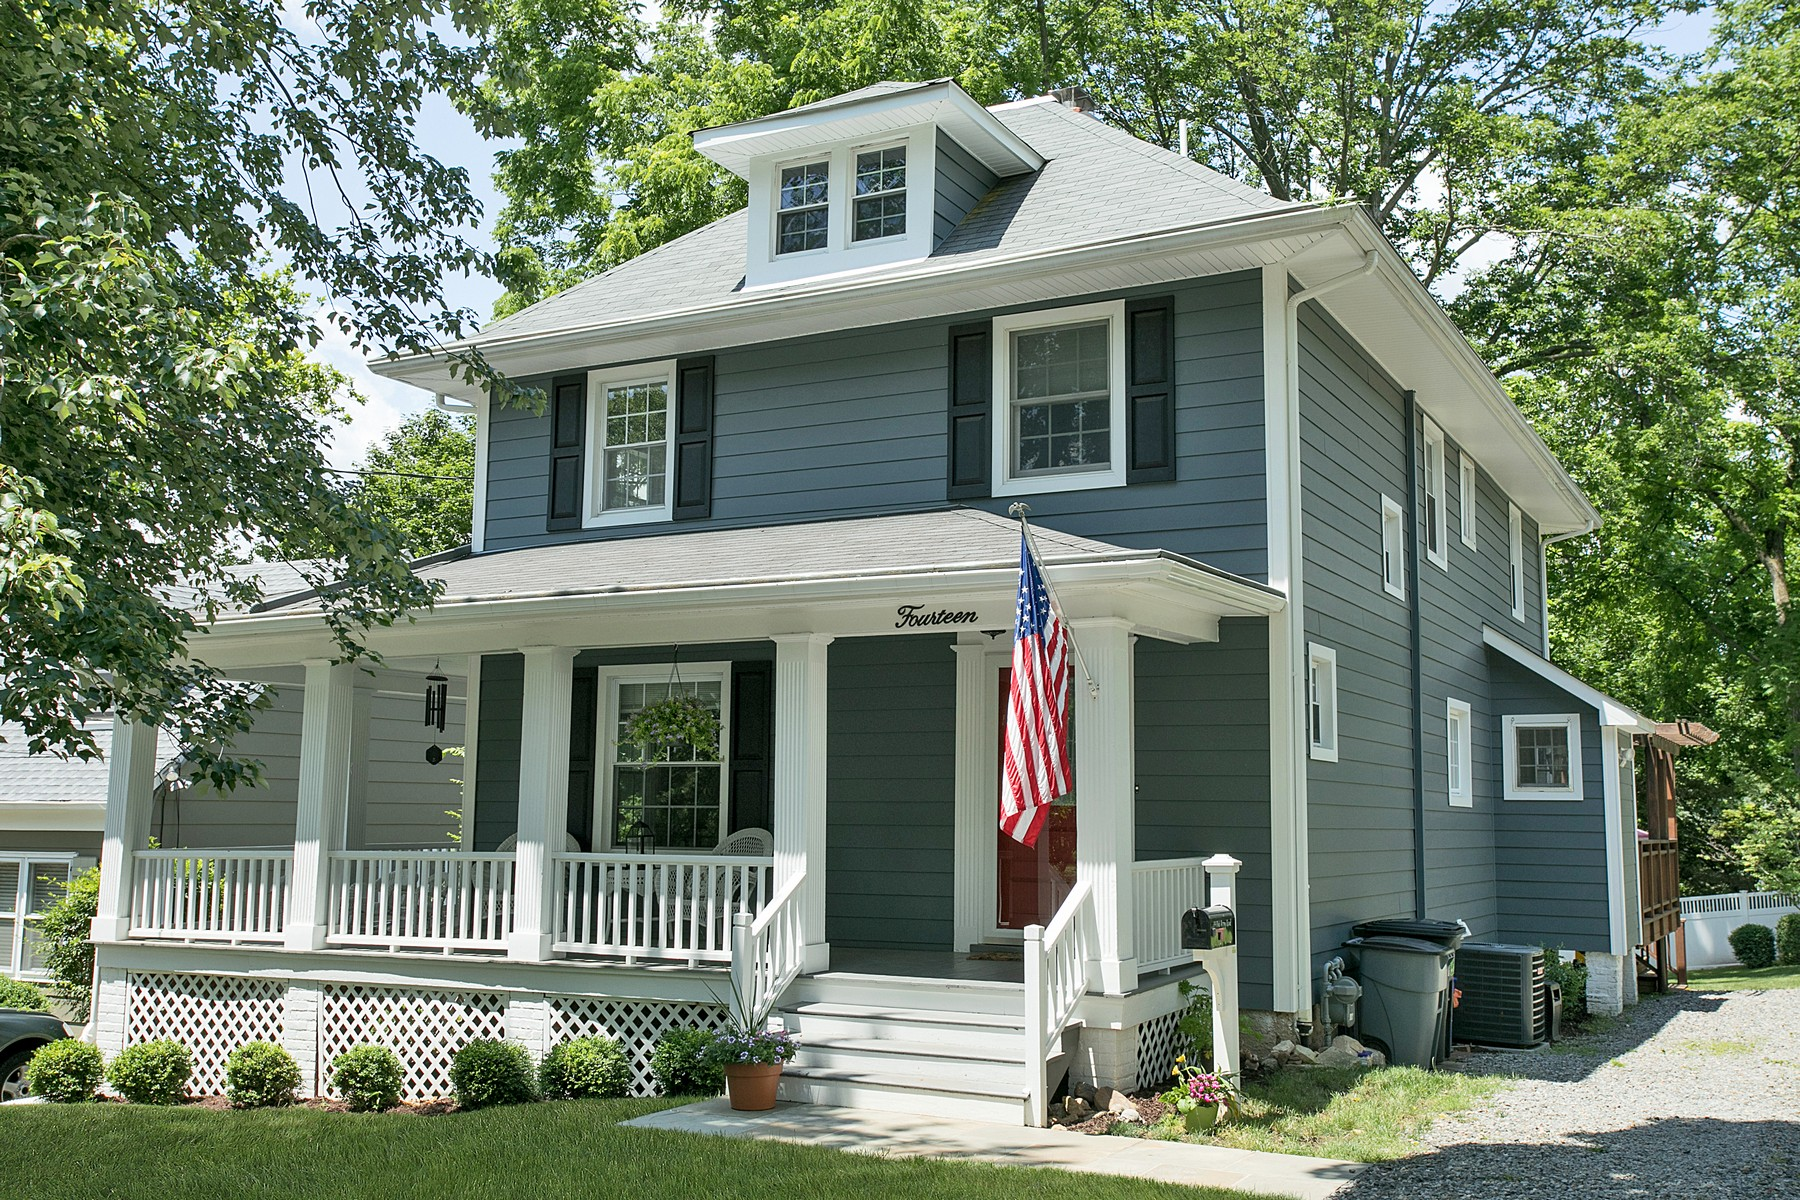 Single Family Home for Sale at Charming Colonial 14 Old Army Road Bernardsville, New Jersey 07924 United States